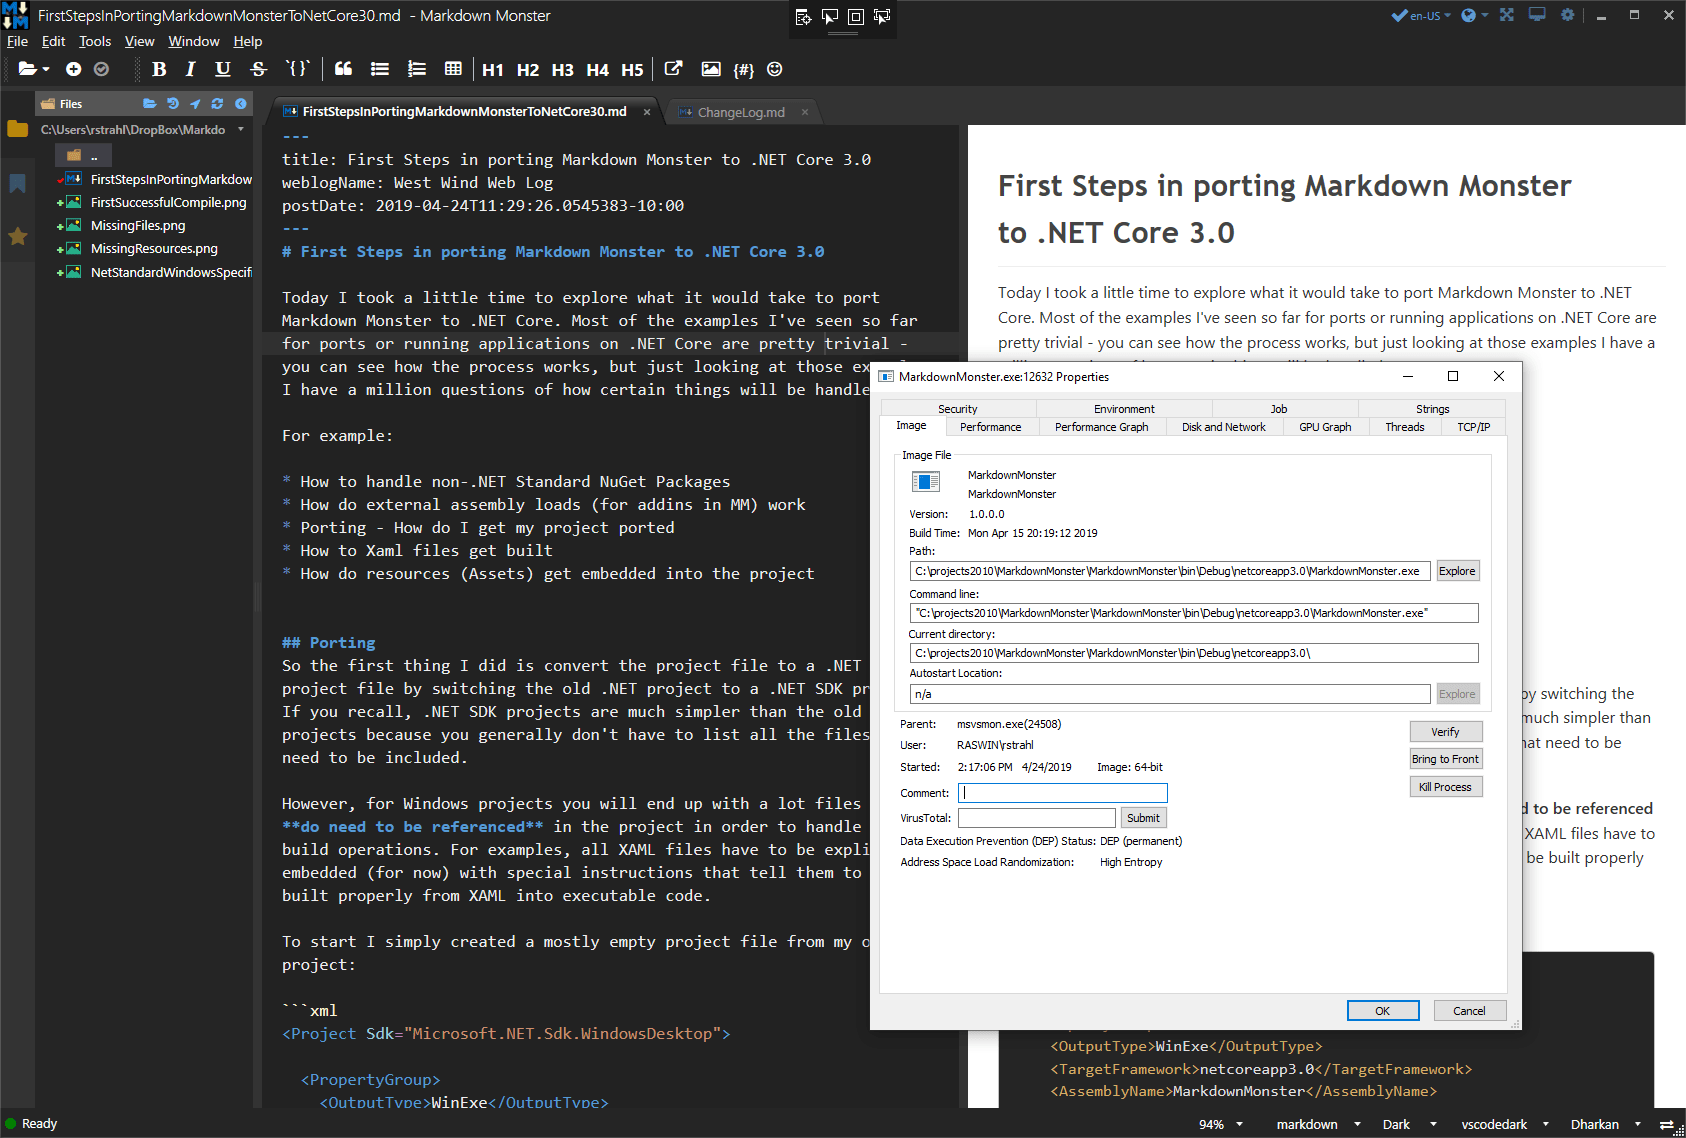 First Steps in porting Markdown Monster WPF App to  NET Core